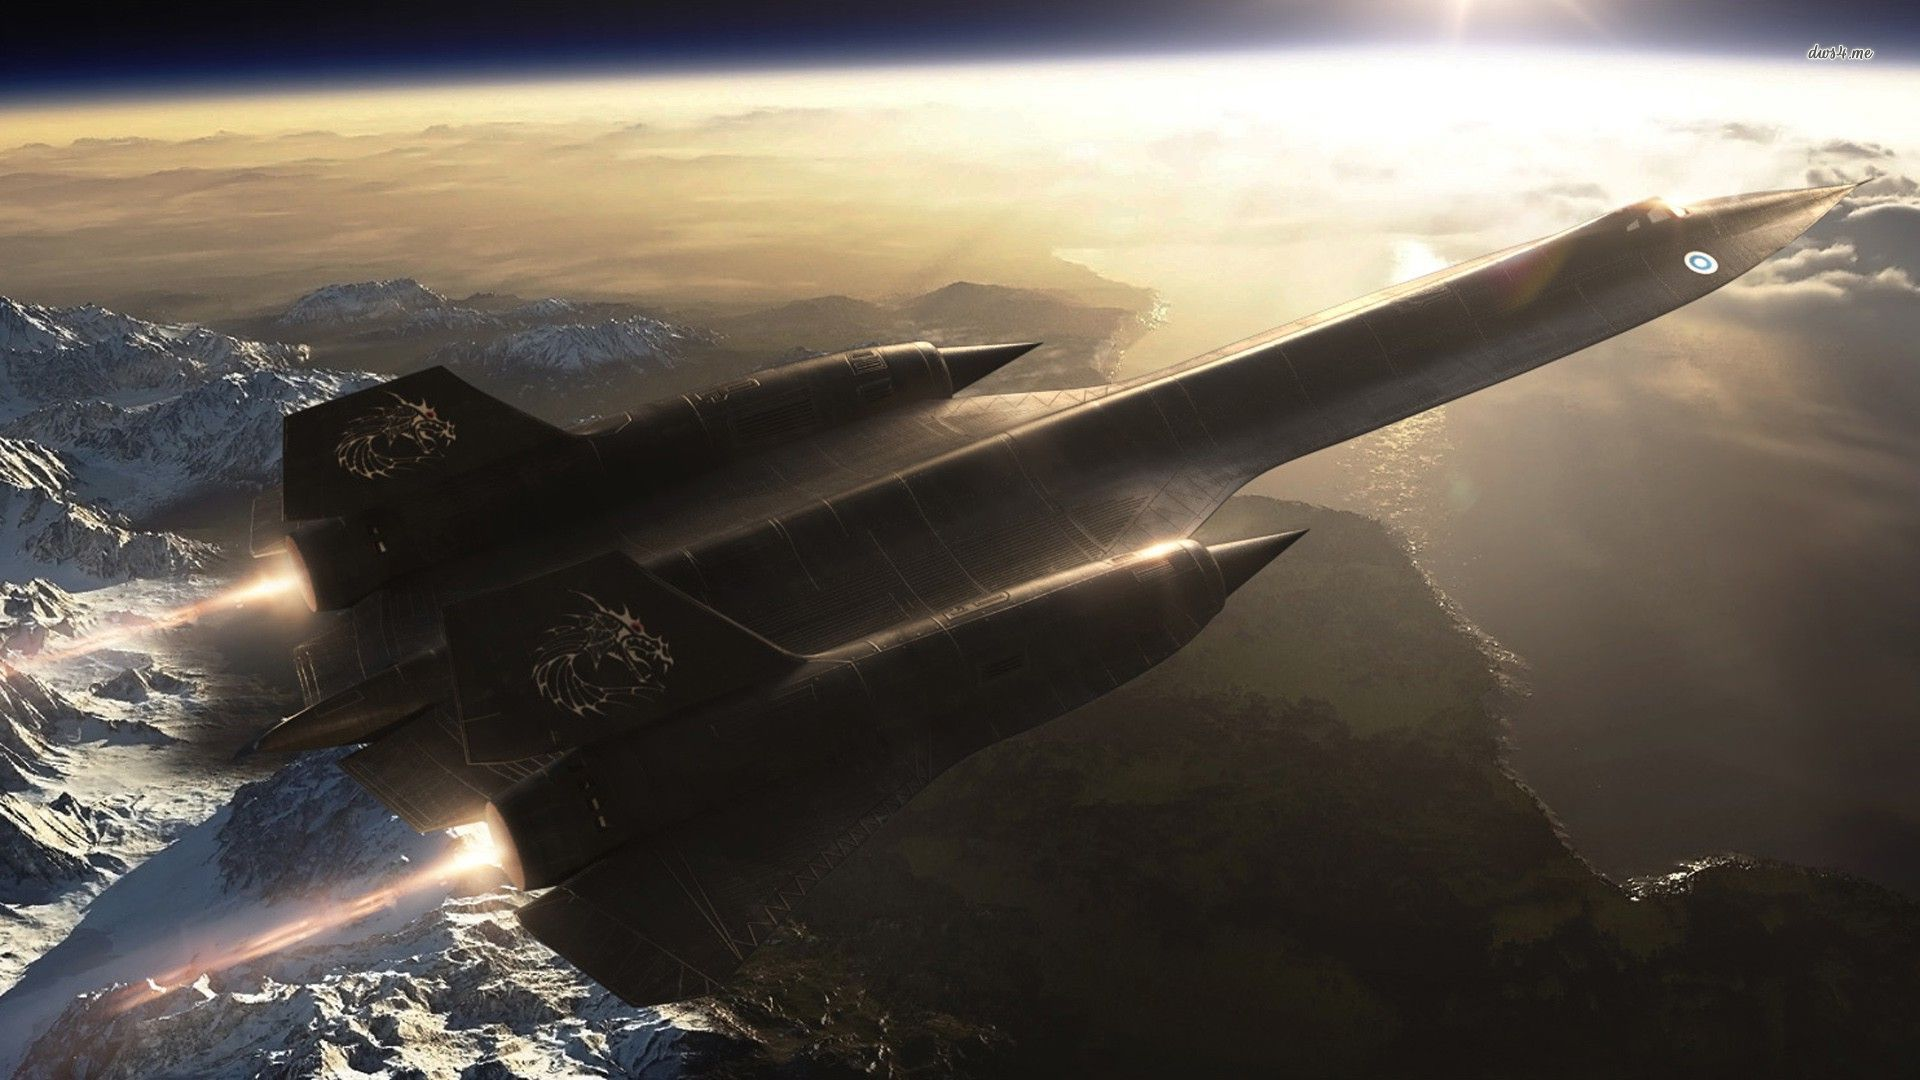 23871-lockheed-sr-71-blackbird-1920x1080-aircraft-wallpaper.jpg